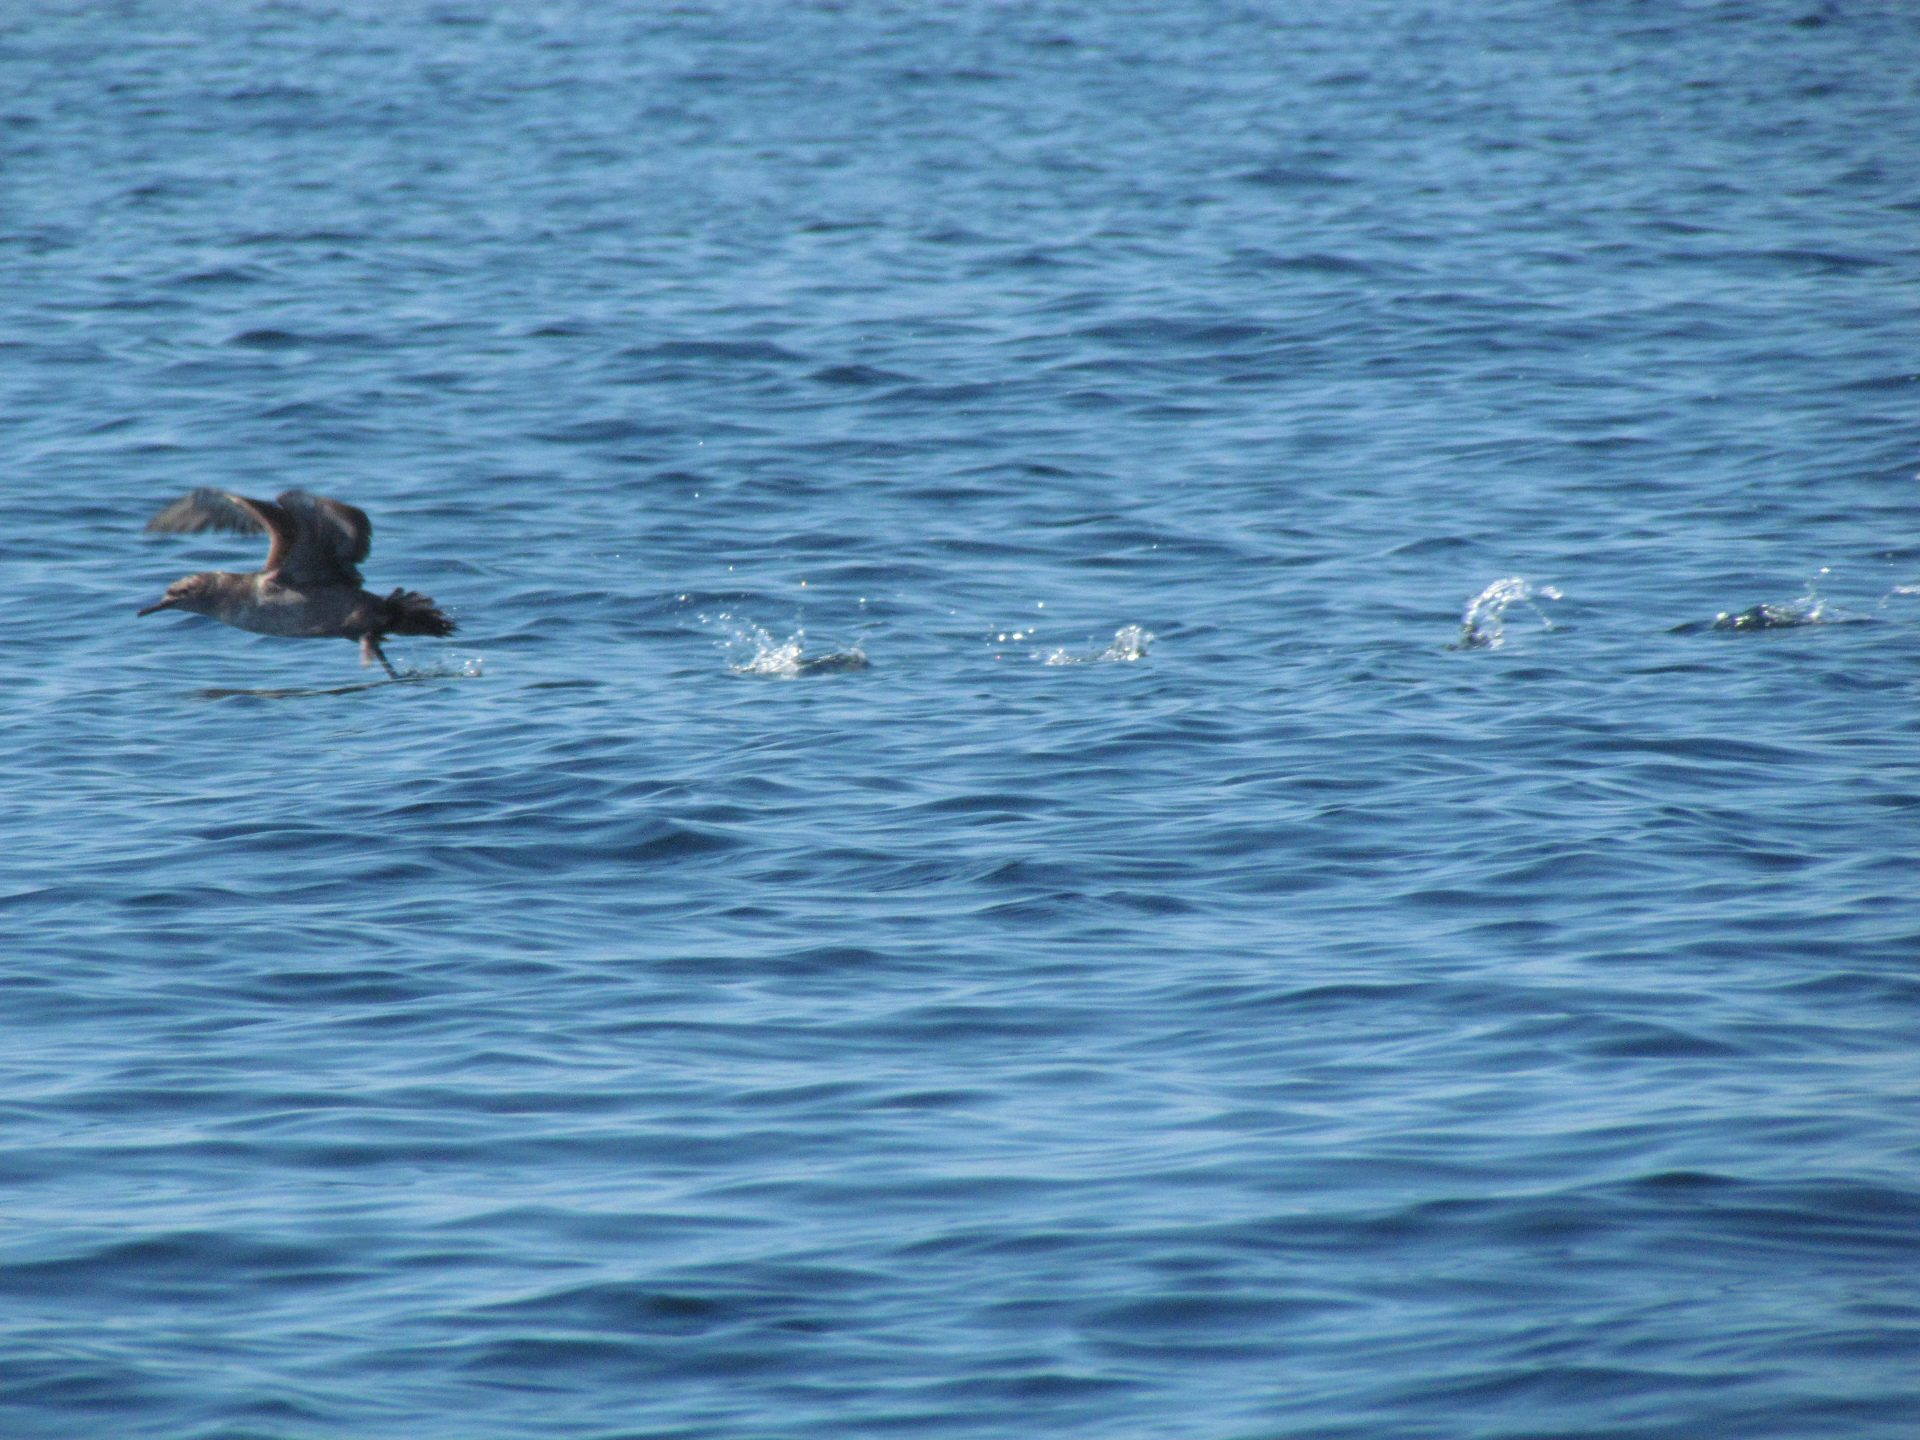 Balearic Shearwater taking off